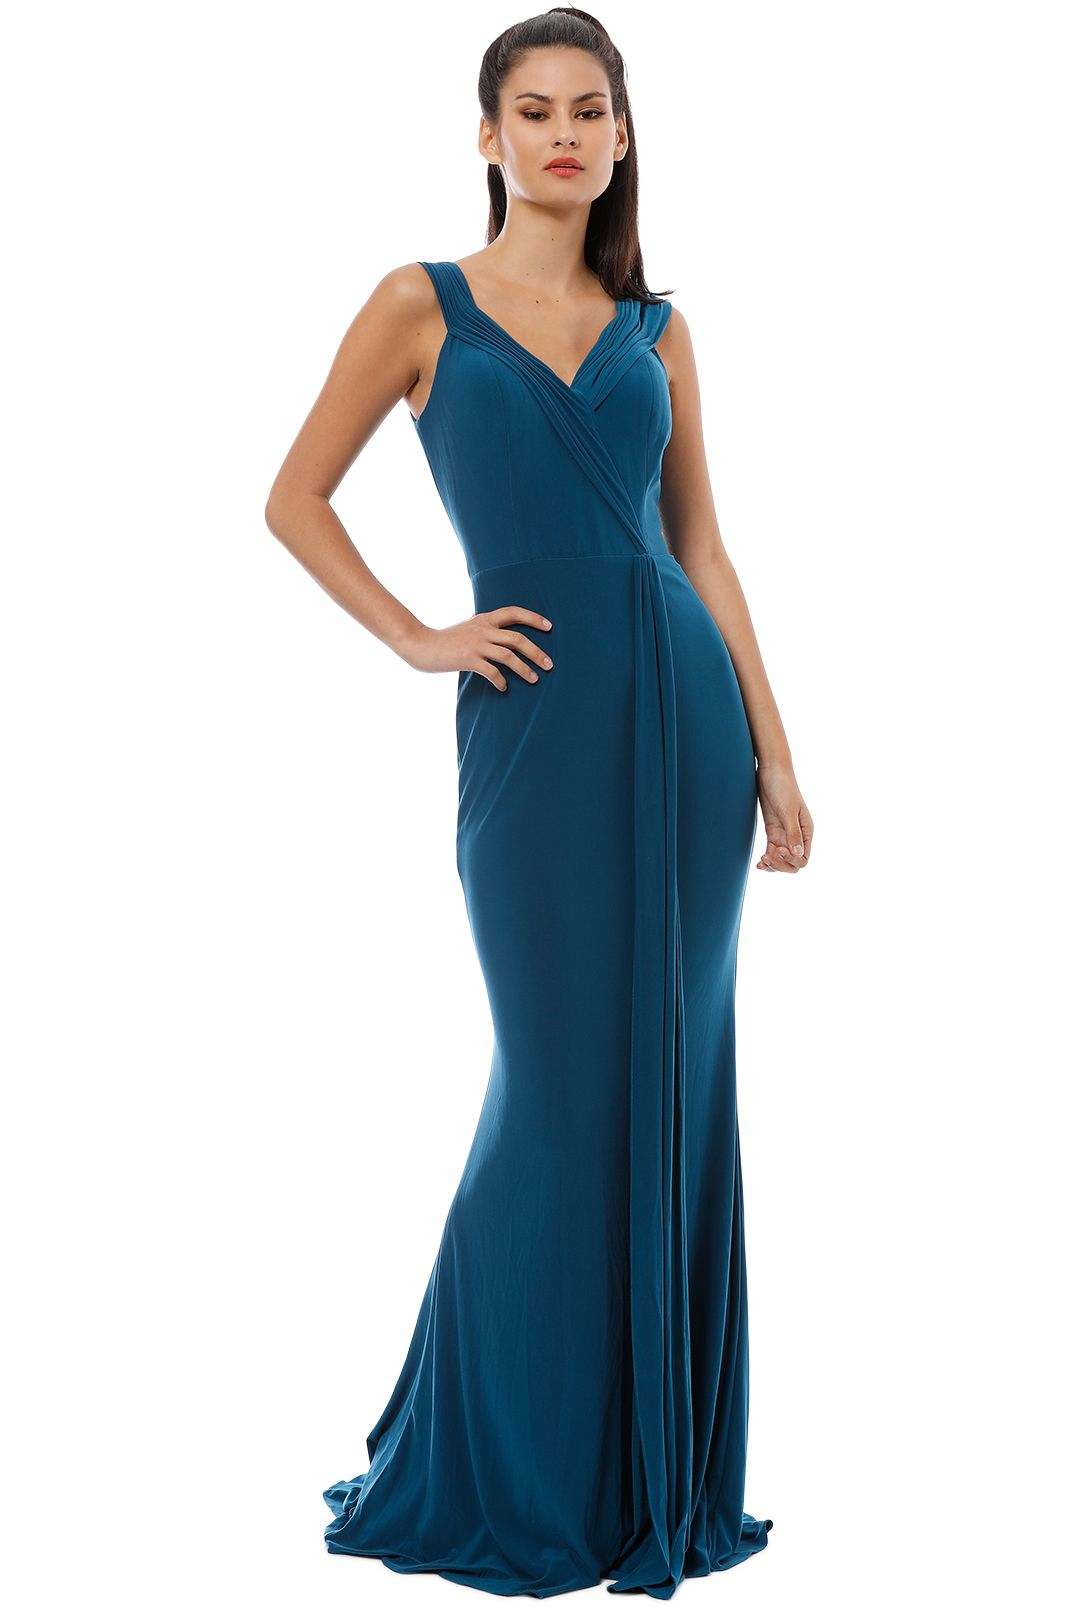 Tania Olsen - Malissa Gown - Teal - Front